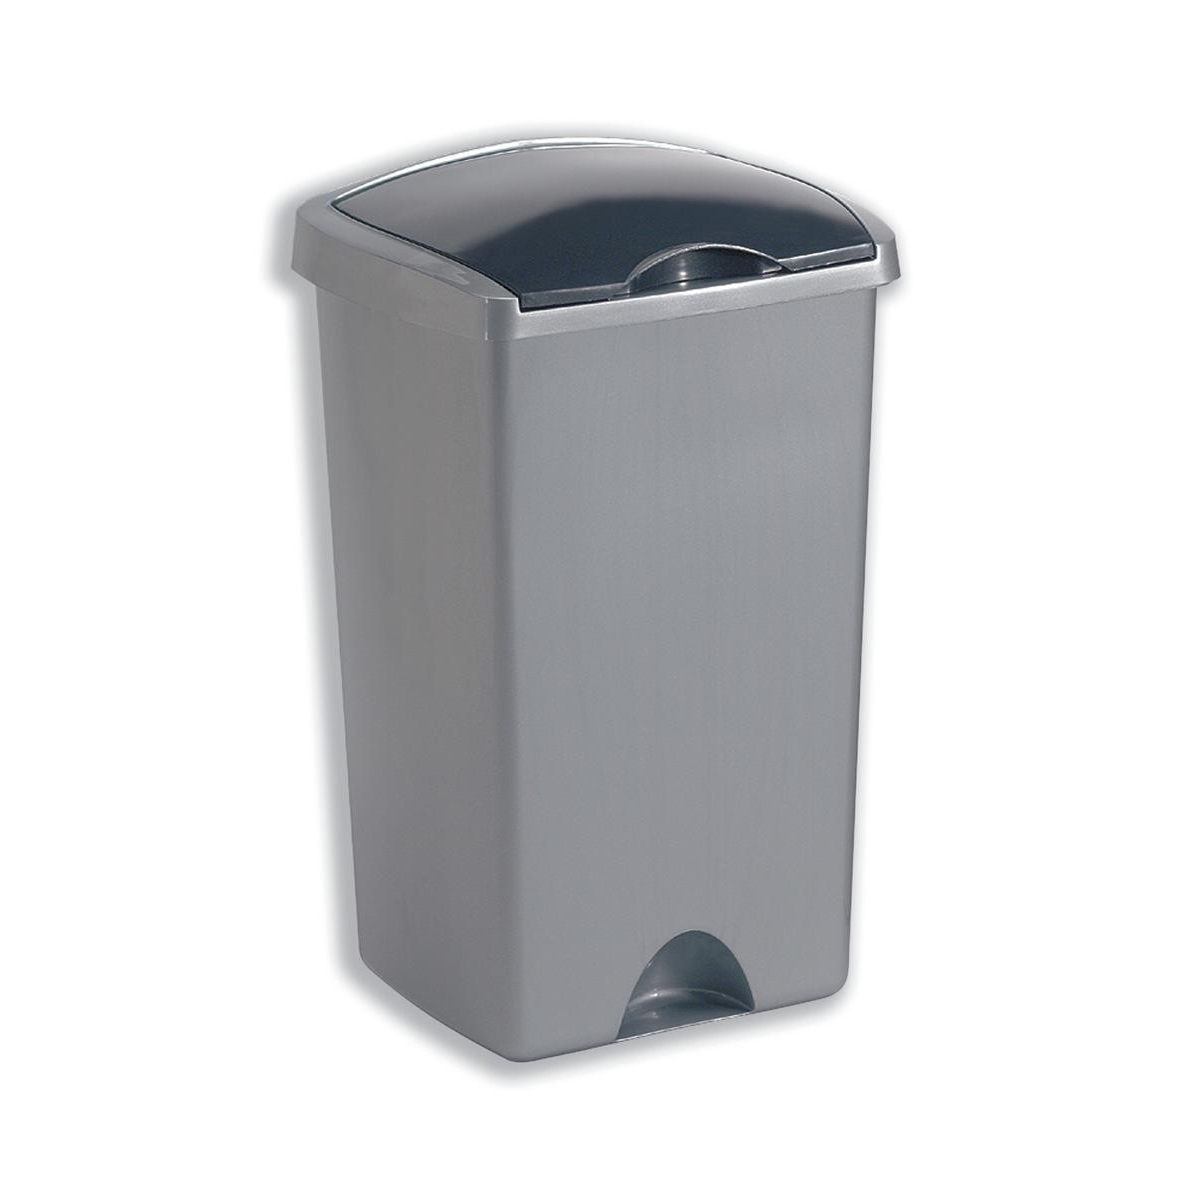 Addis Lift Up Lid Bin Plastic 50 Litres Metallic Silver Ref